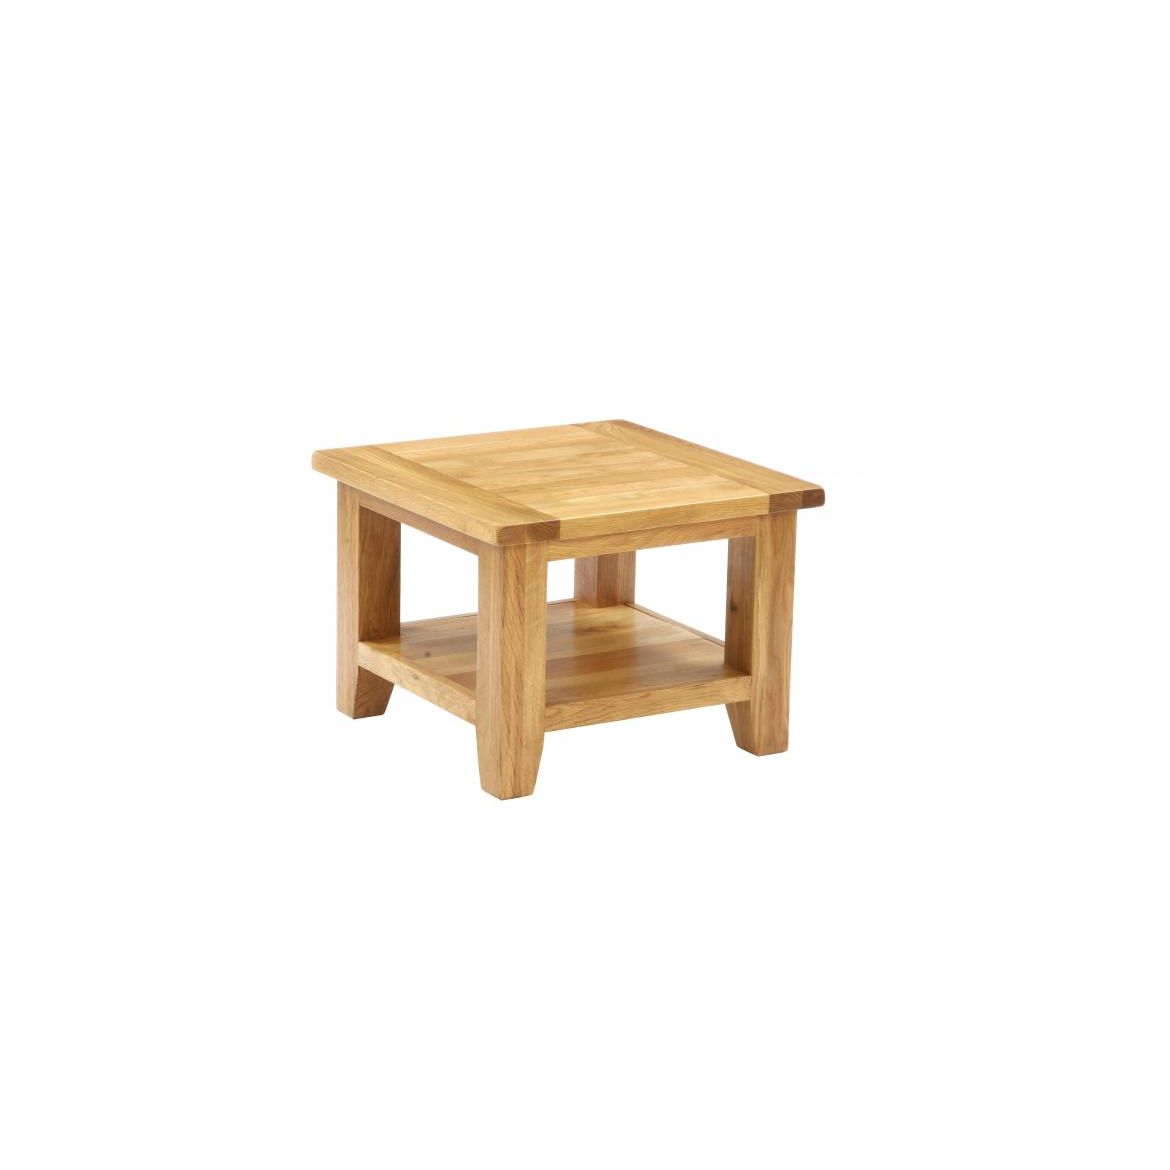 Square Coffee Table Taverham Nursery Centre Norwich